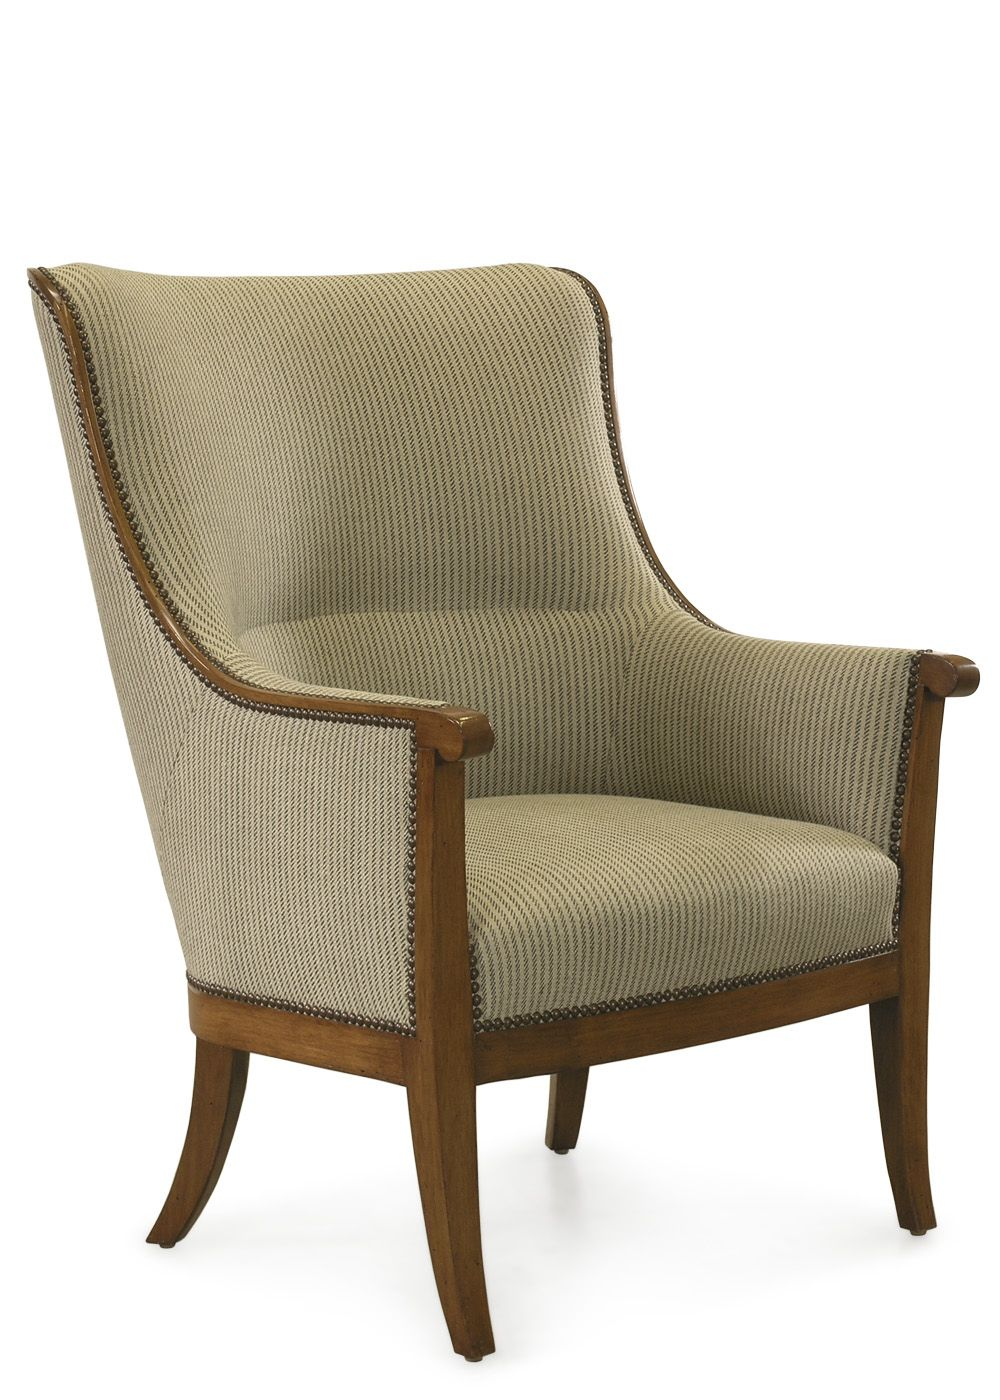 house fh chair international kelston occasional chairs categories category product